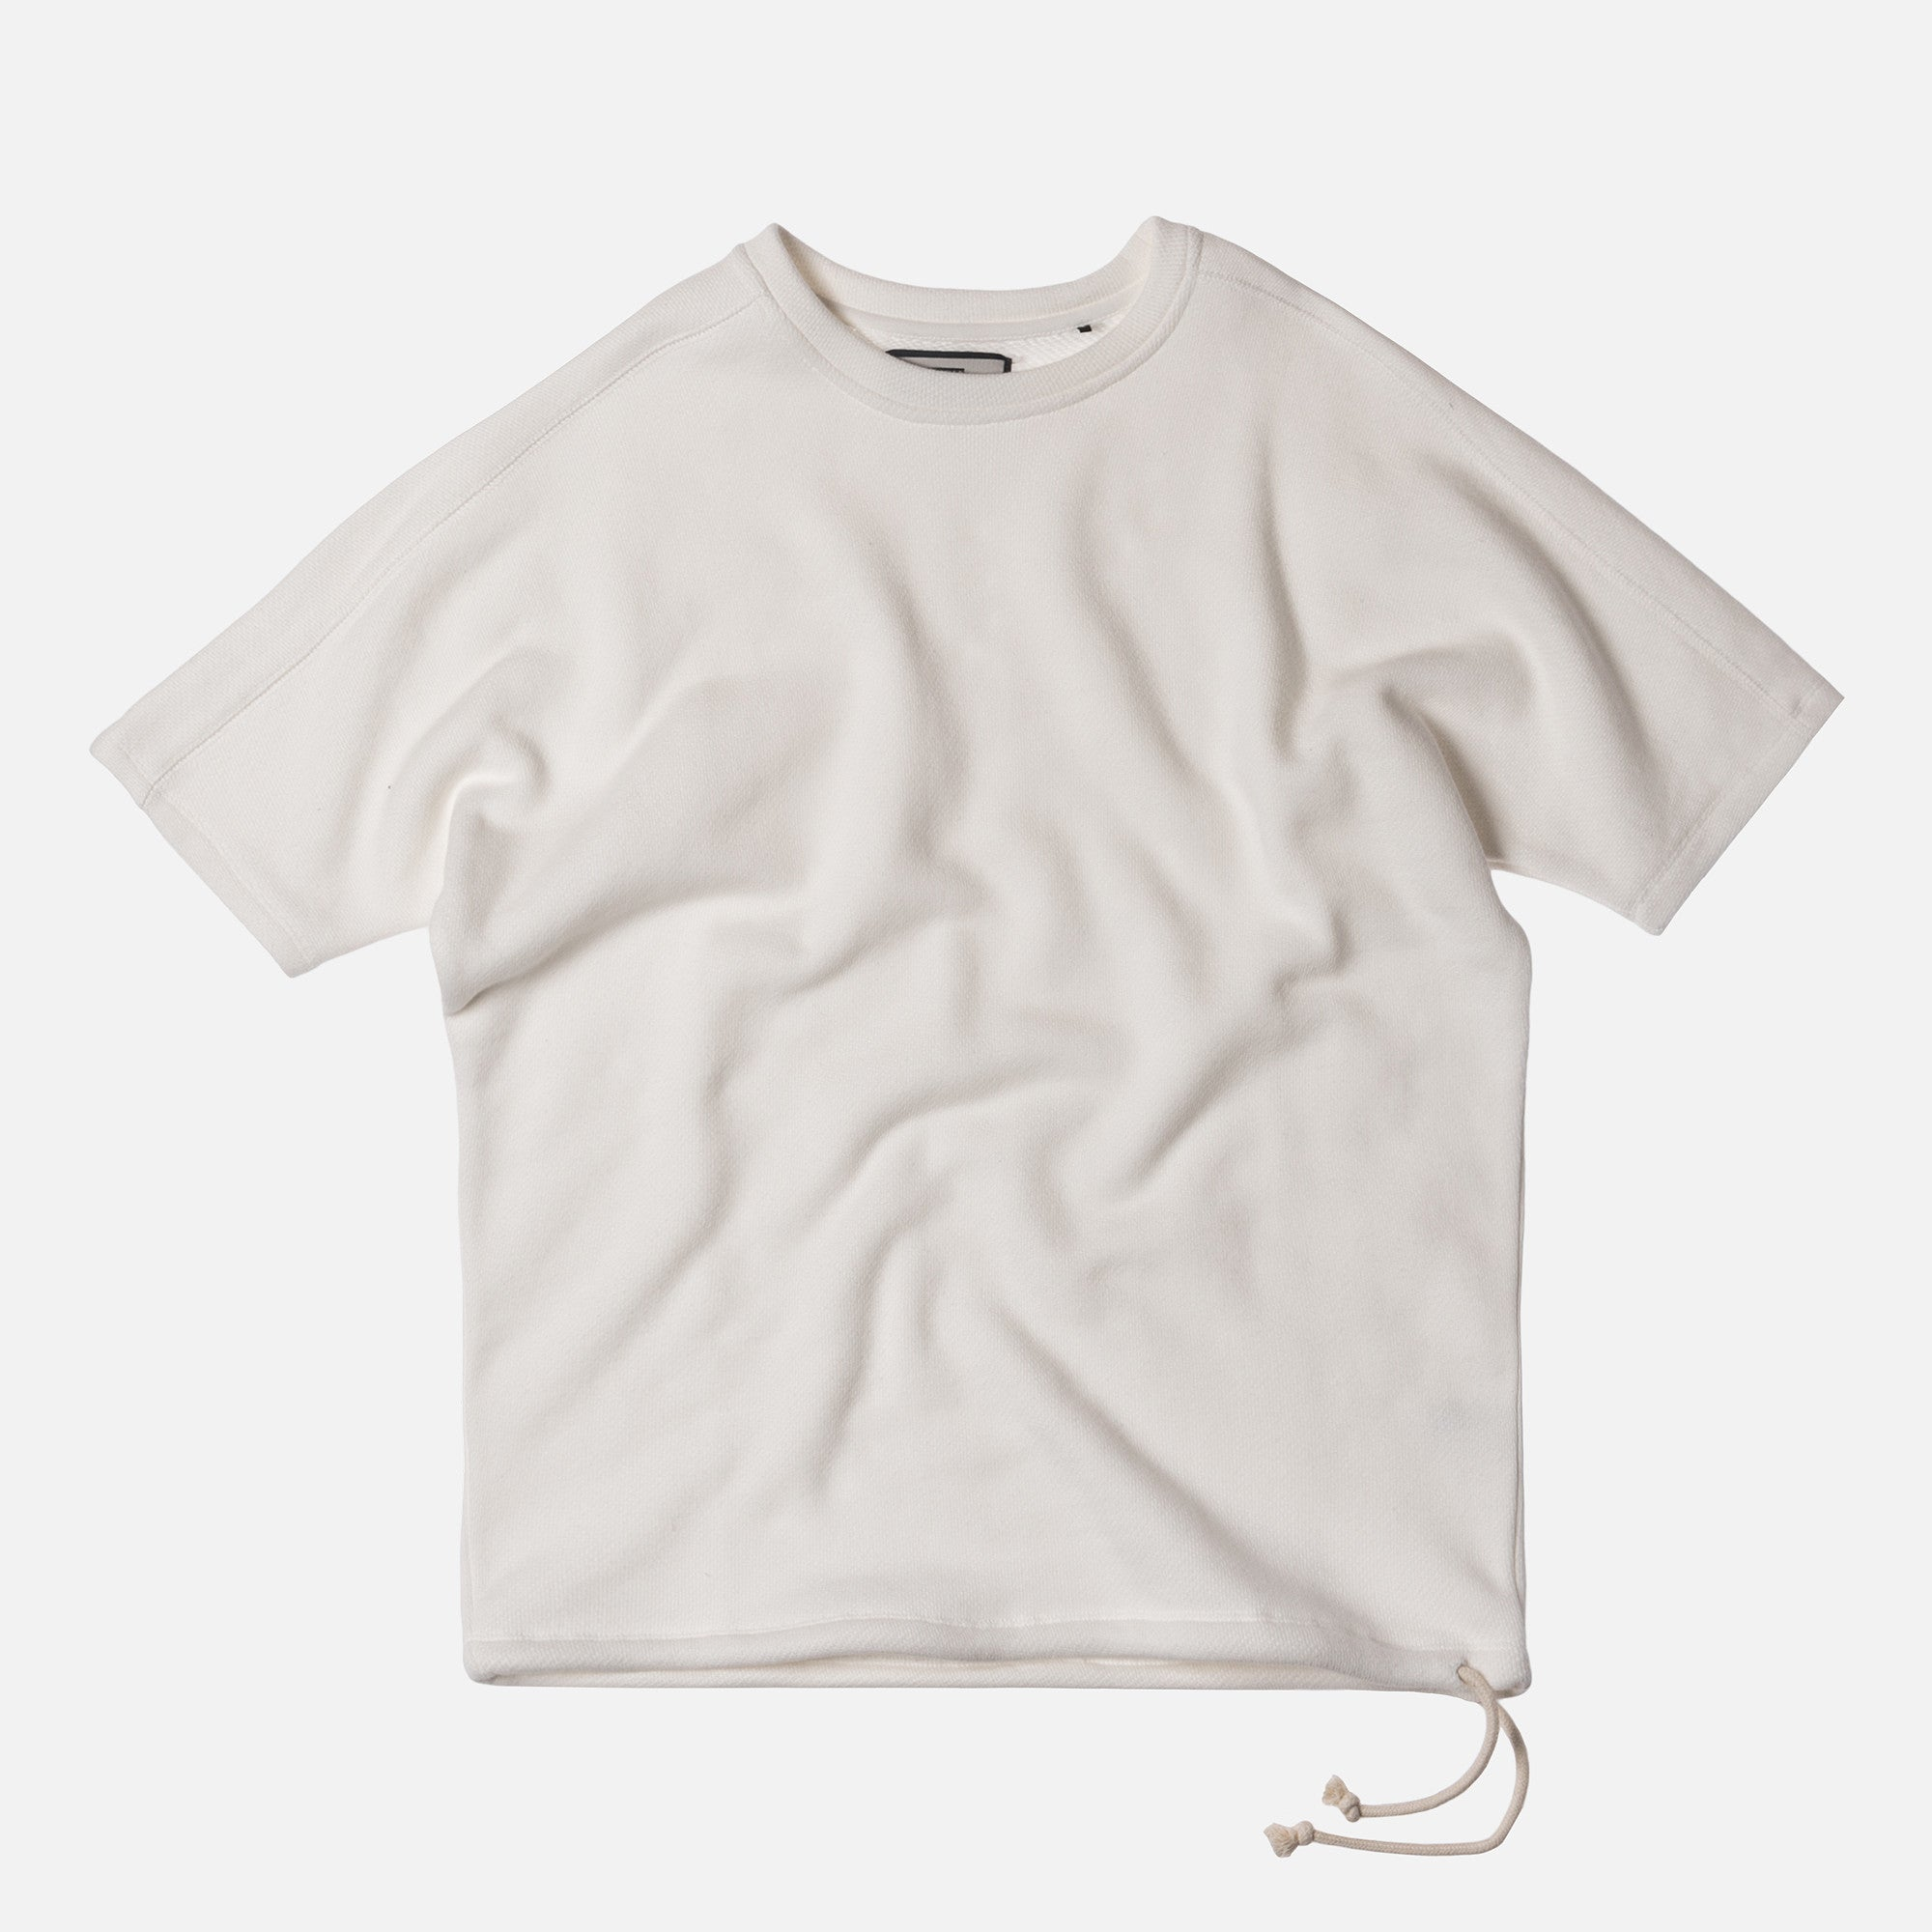 Kith Alton Terry Tee - White